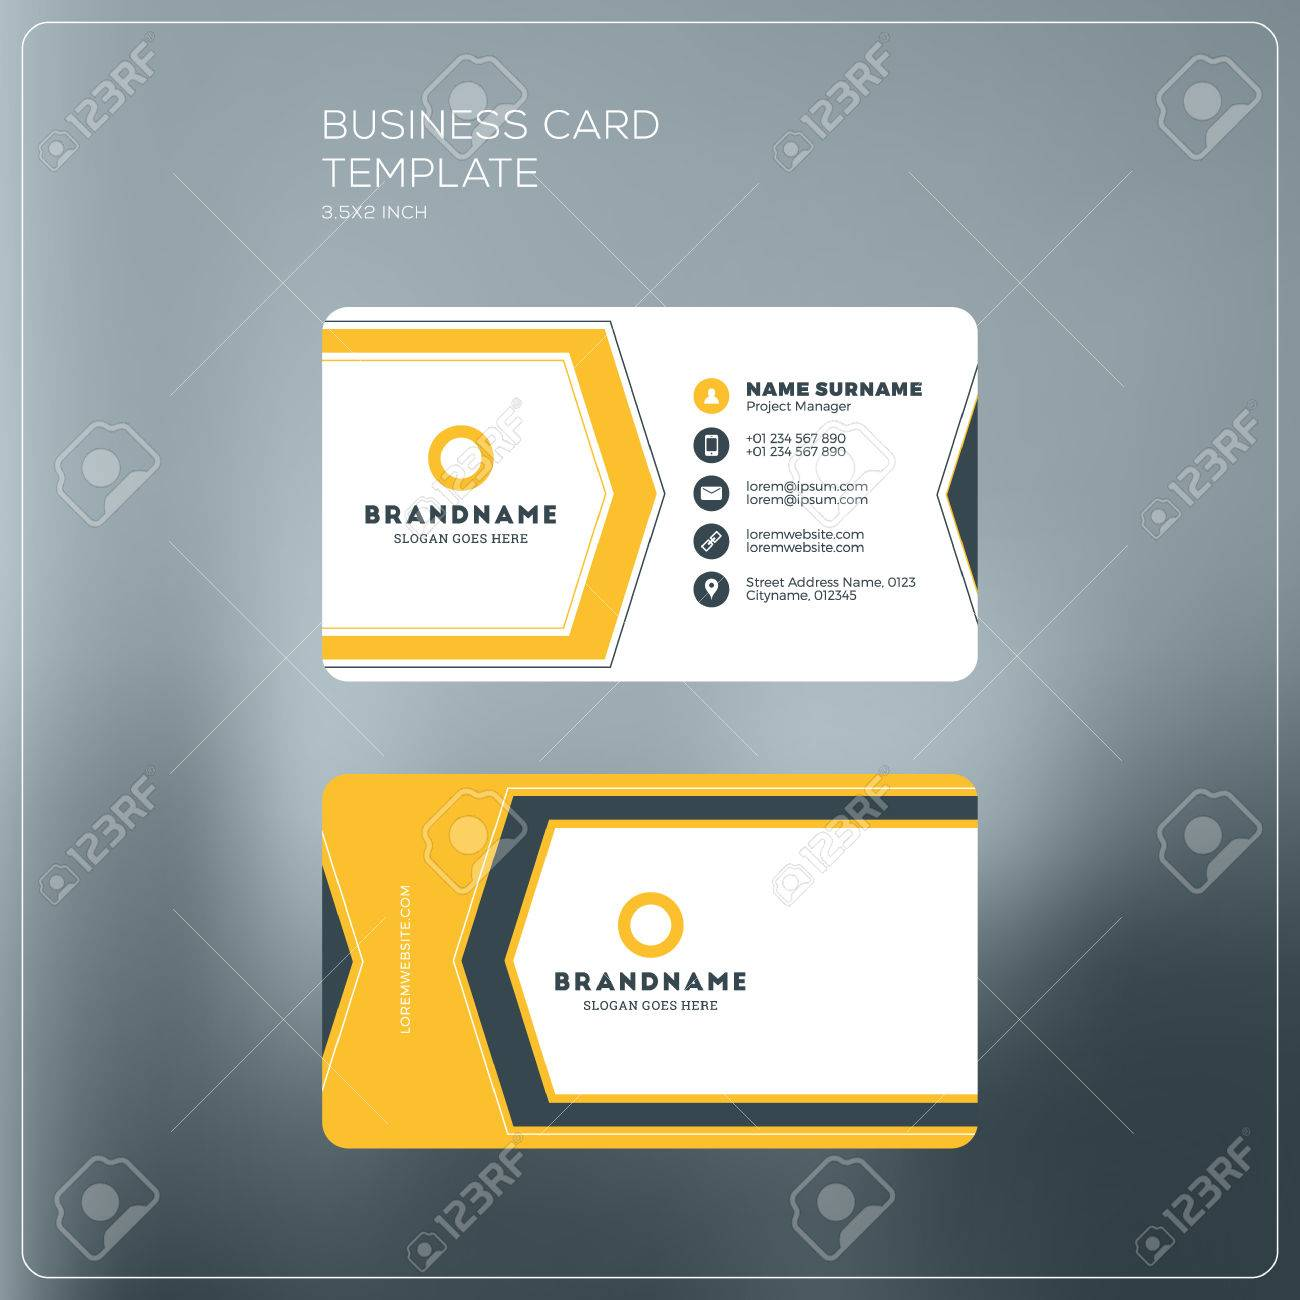 Corporate business card print template personal visiting card banco de imagens corporate business card print template personal visiting card black and yellow colors clean flat design vector illustration reheart Gallery